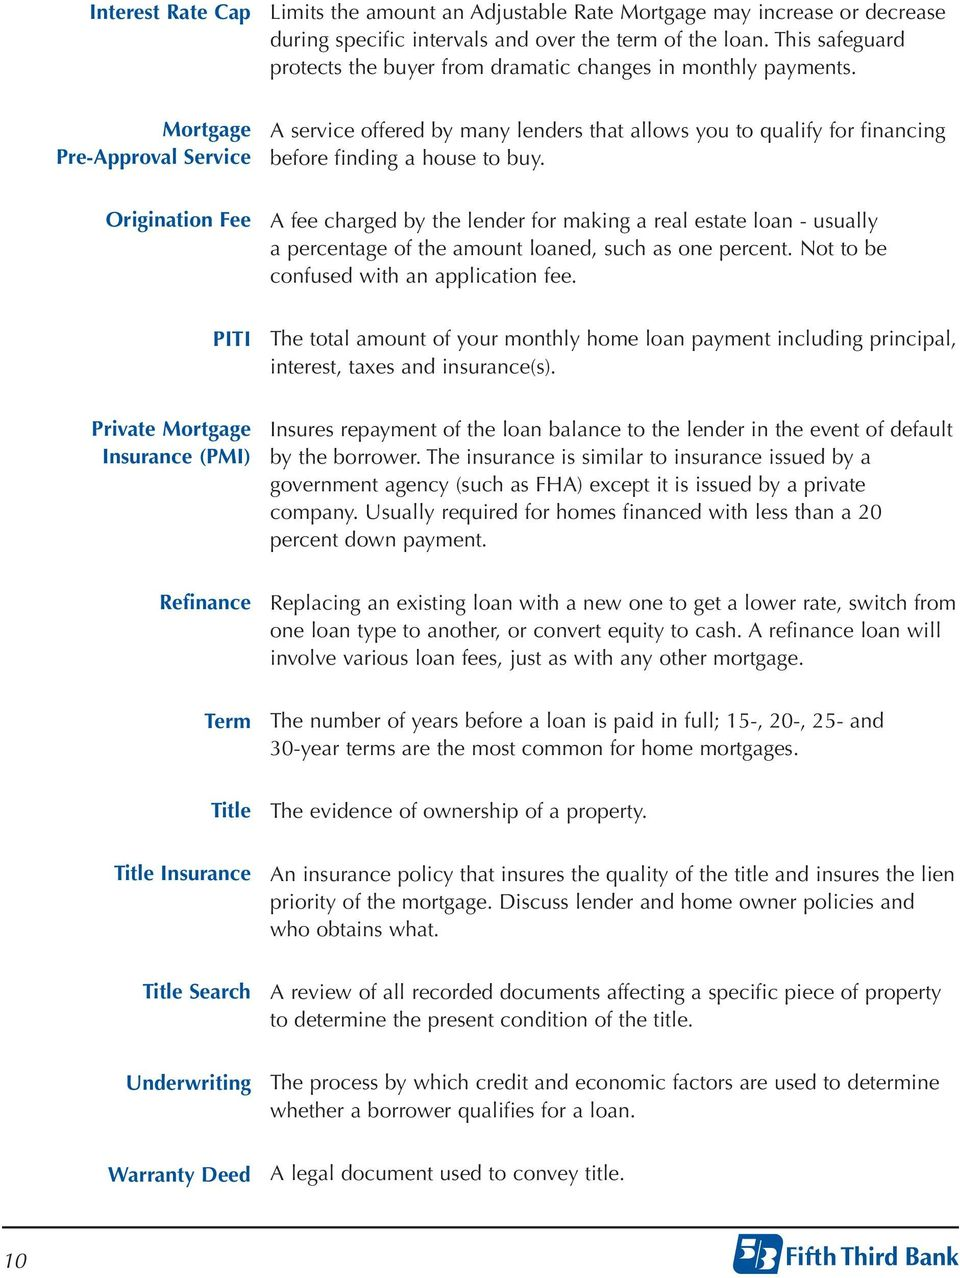 Mortgage Pre-Approval Service A service offered by many lenders that allows you to qualify for financing before finding a house to buy.